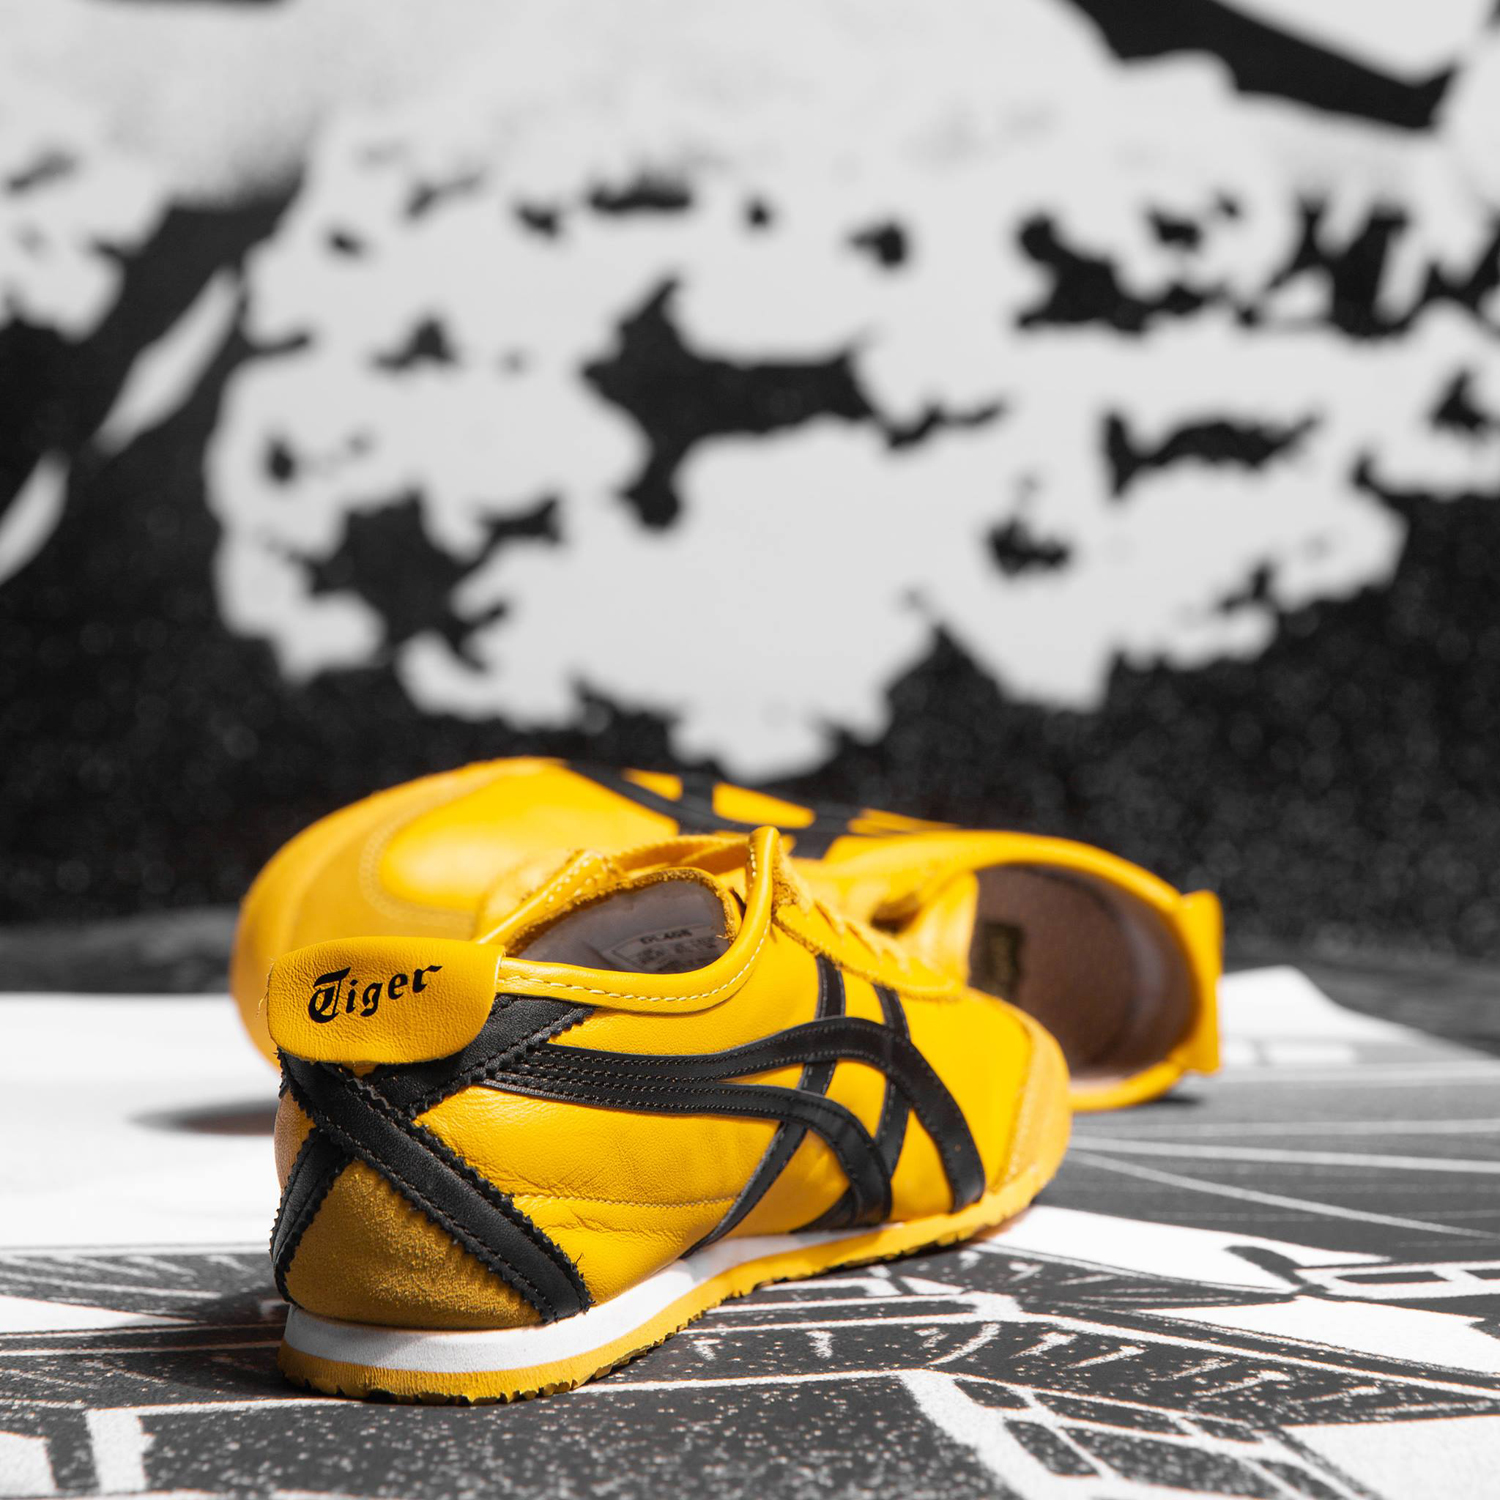 official photos fadf1 08374 Asics Tiger Welcome to the Dojo Clothing and Shoes ...